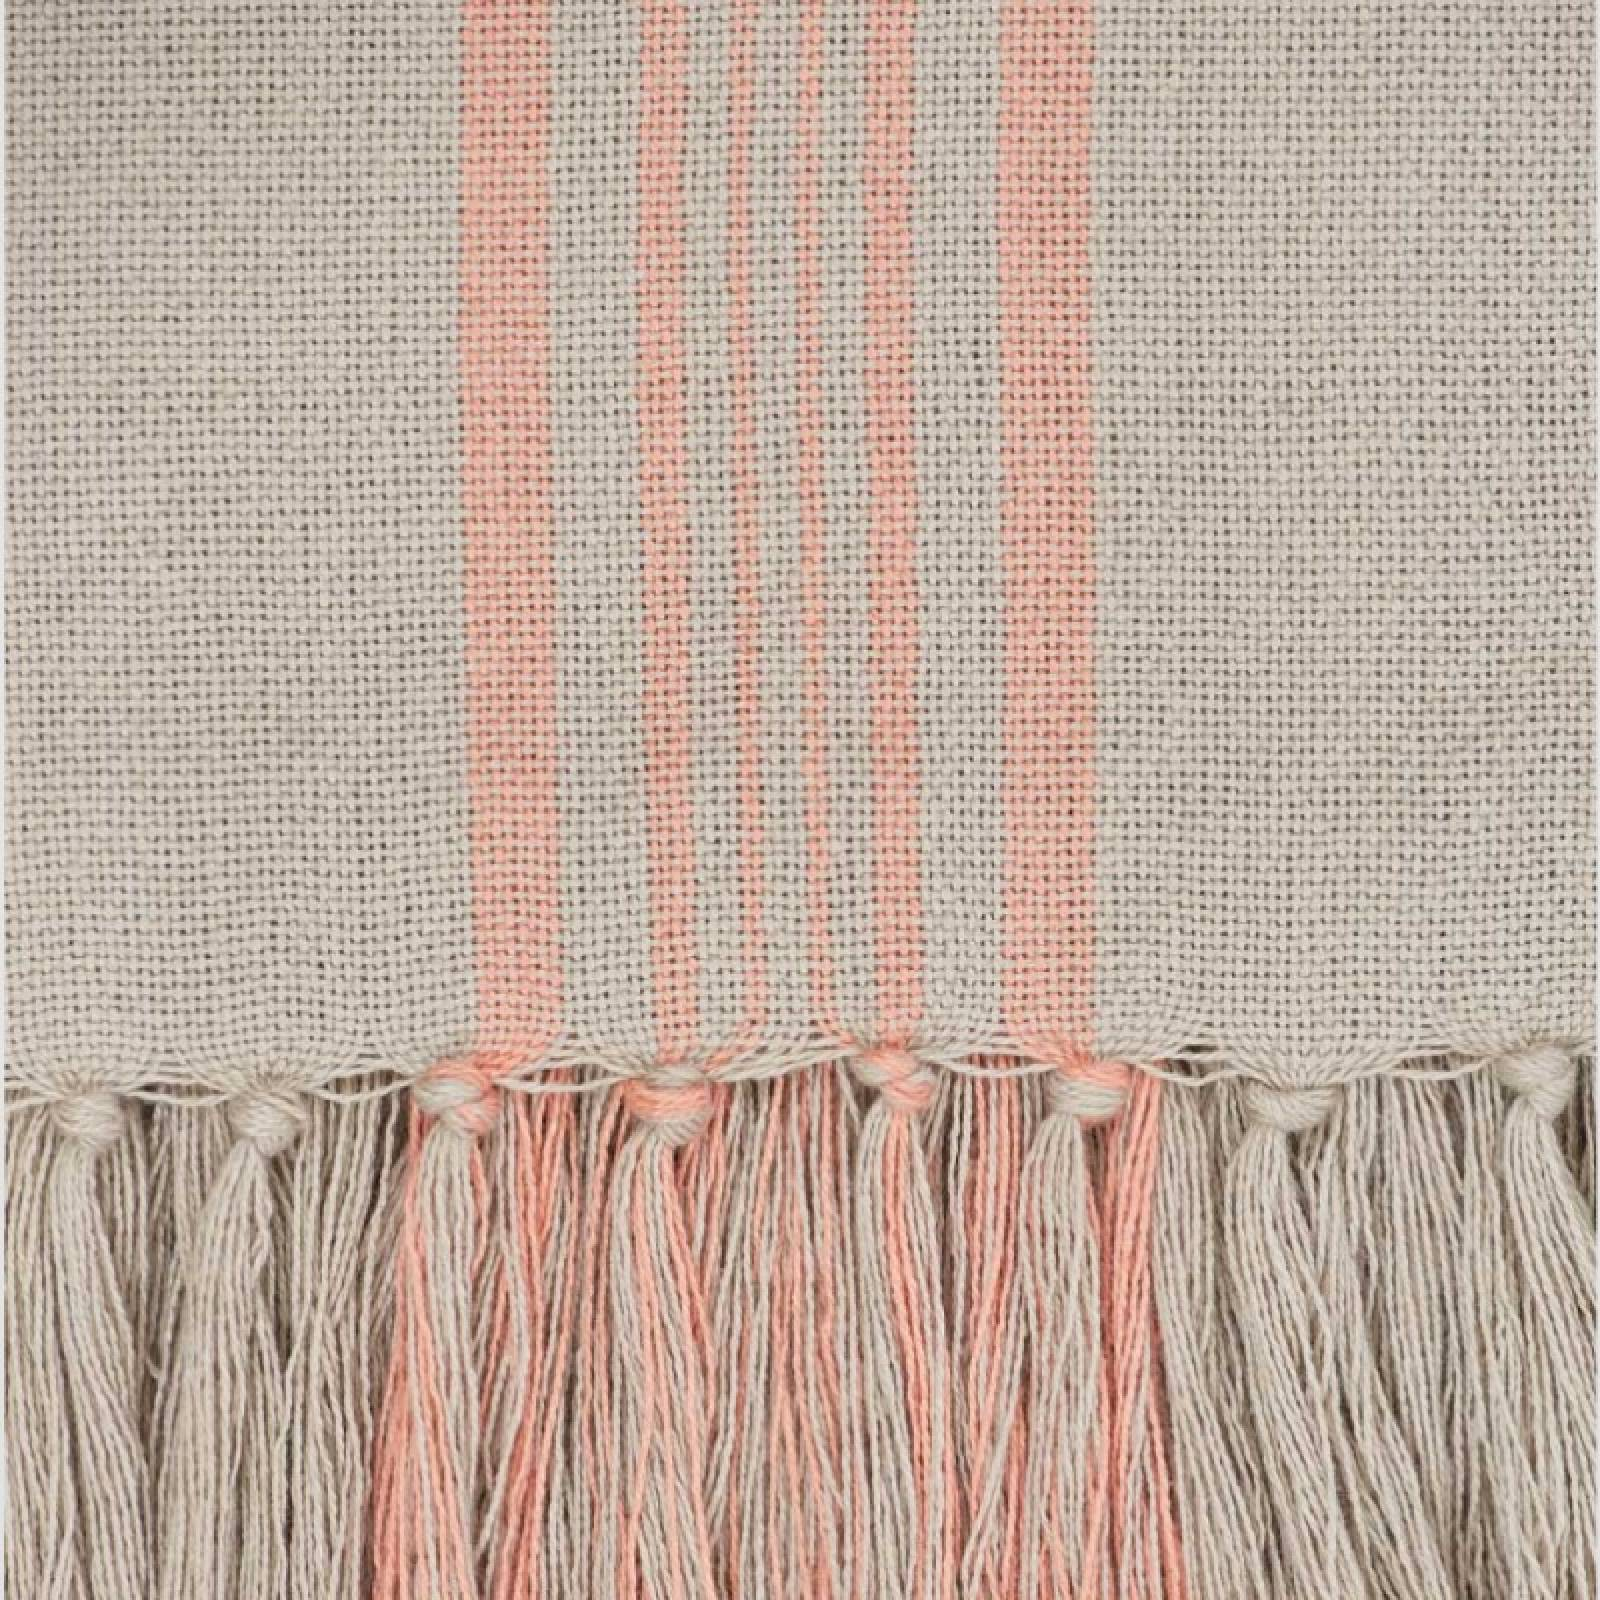 Antibes Coral Stripe Throw - Made From Recycled Plastic Bottles thumbnails